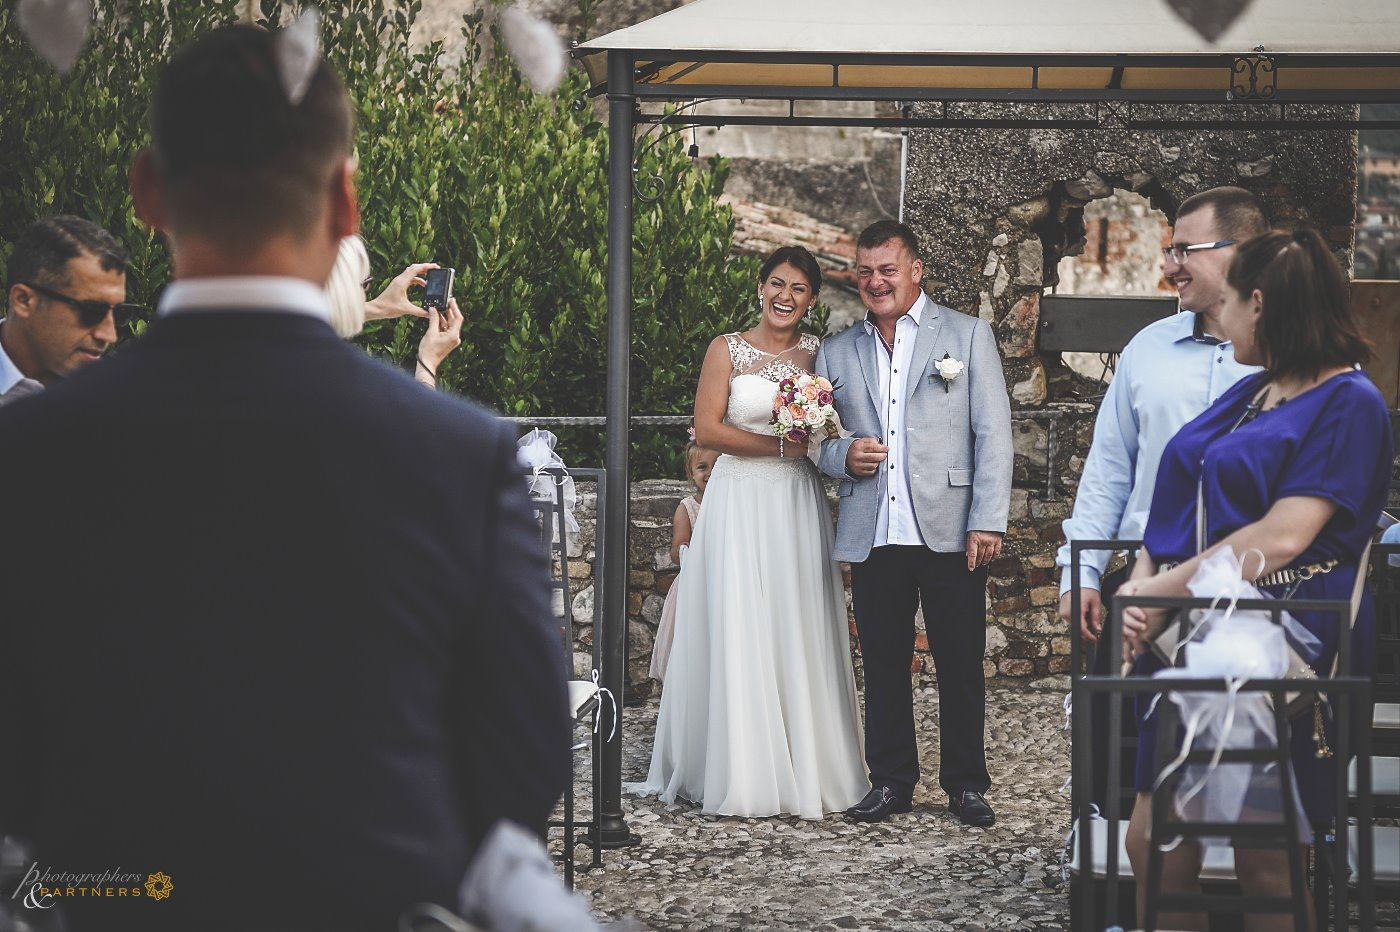 photography_weddings_malcesine_05.jpg